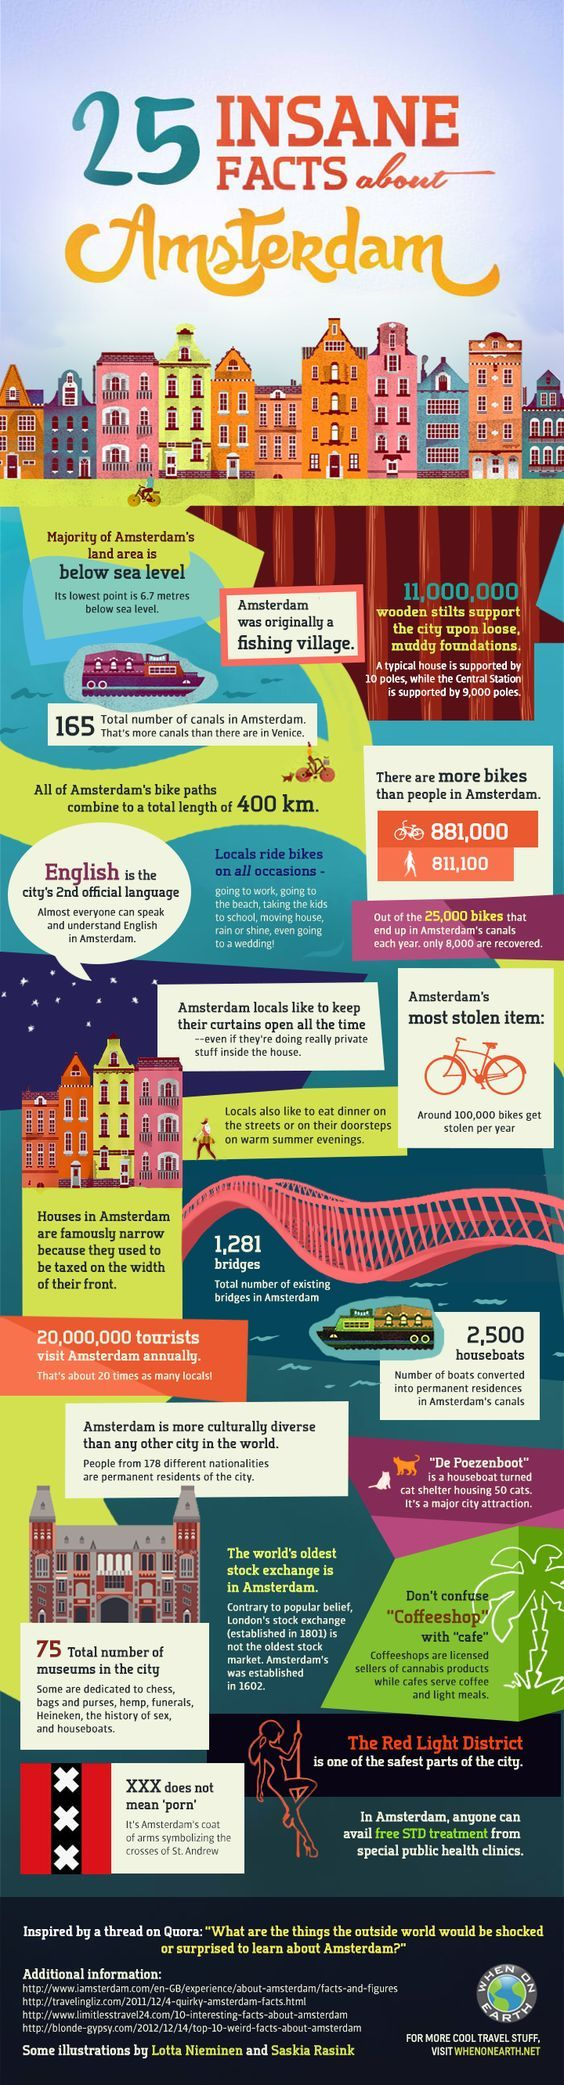 25 Insane Facts About Amsterdam   #infographic #Travel #Amsterdam: